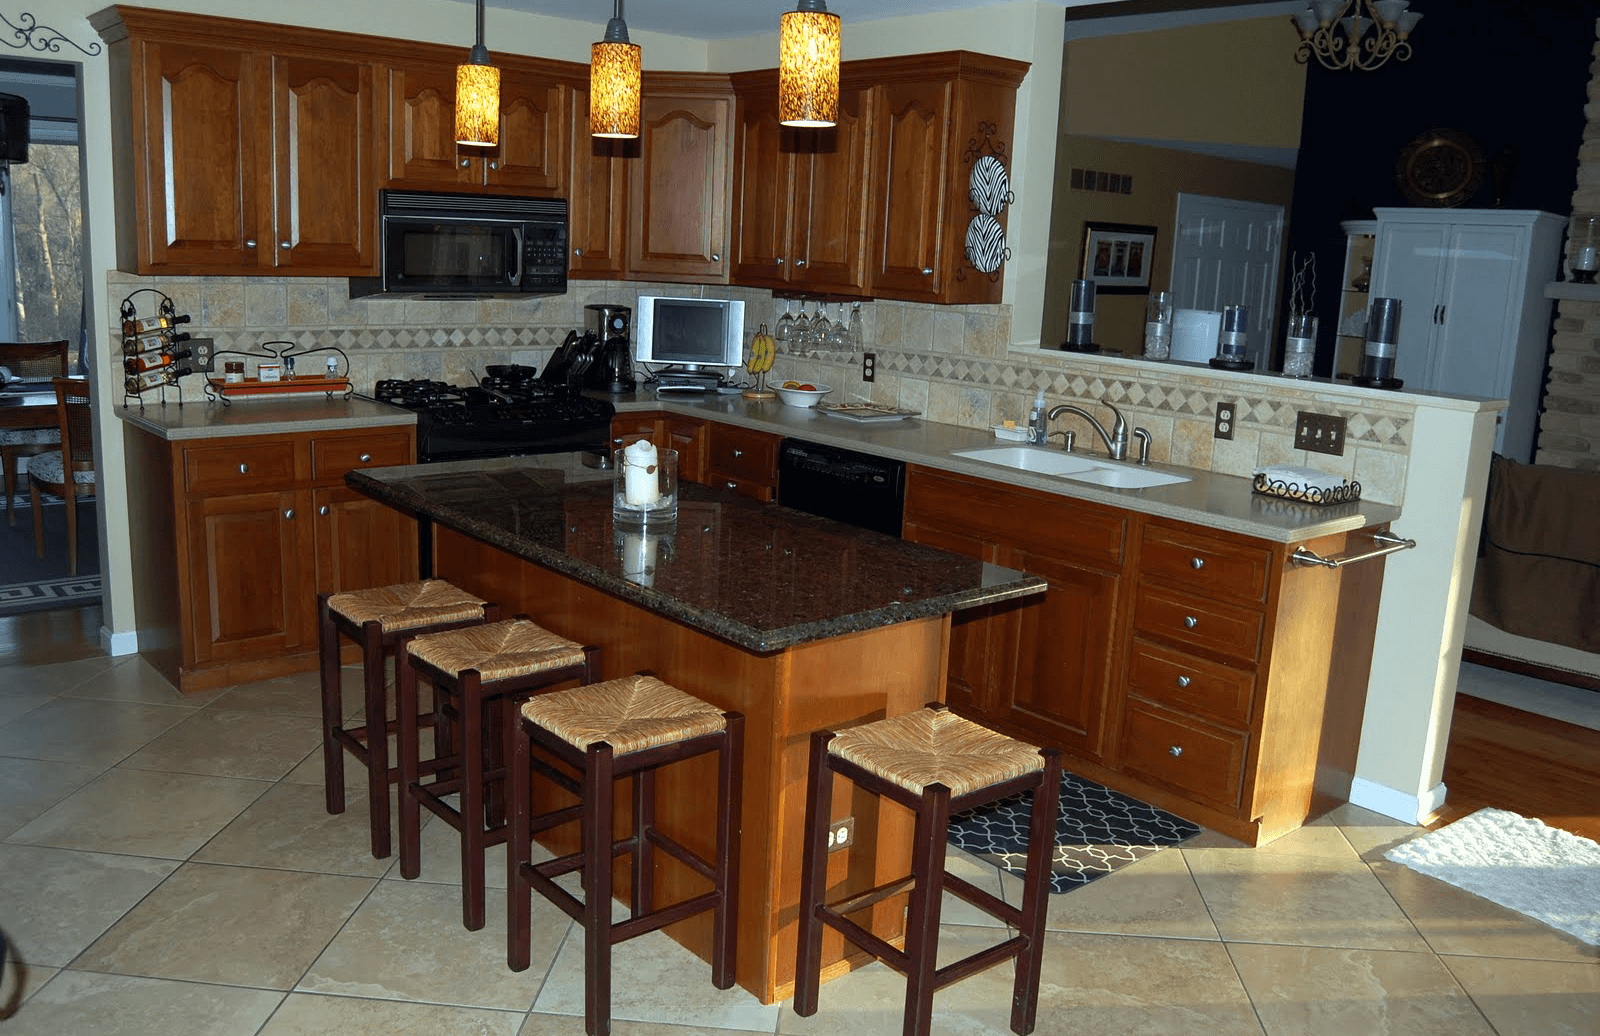 Incroyable Unique Design Kitchen Island With Breakfast Bar And Granite Top With Wax As  Decoration